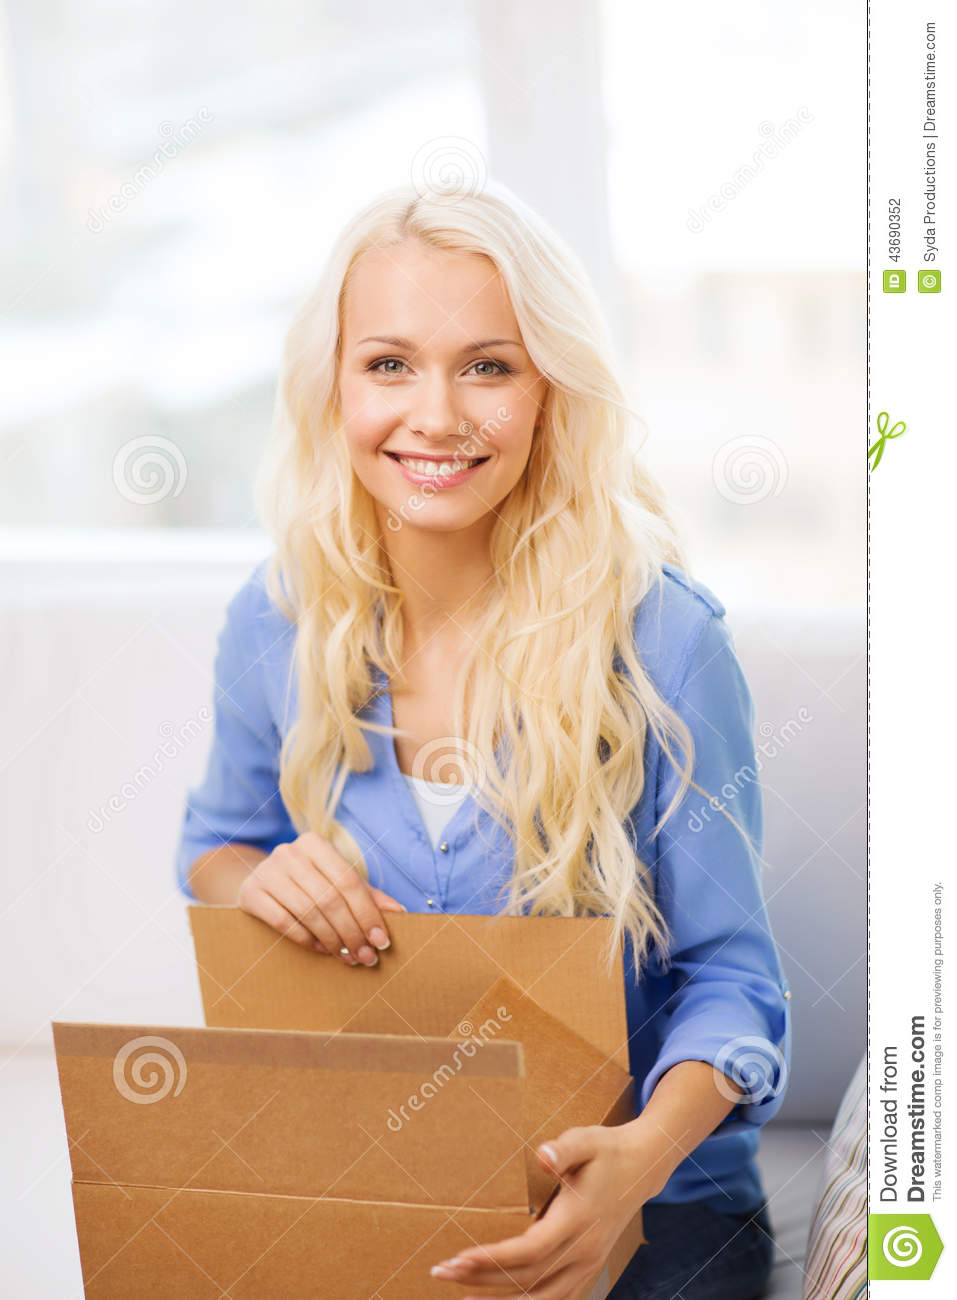 Smiling Young Woman Opening Cardboard Box Stock Photo ...